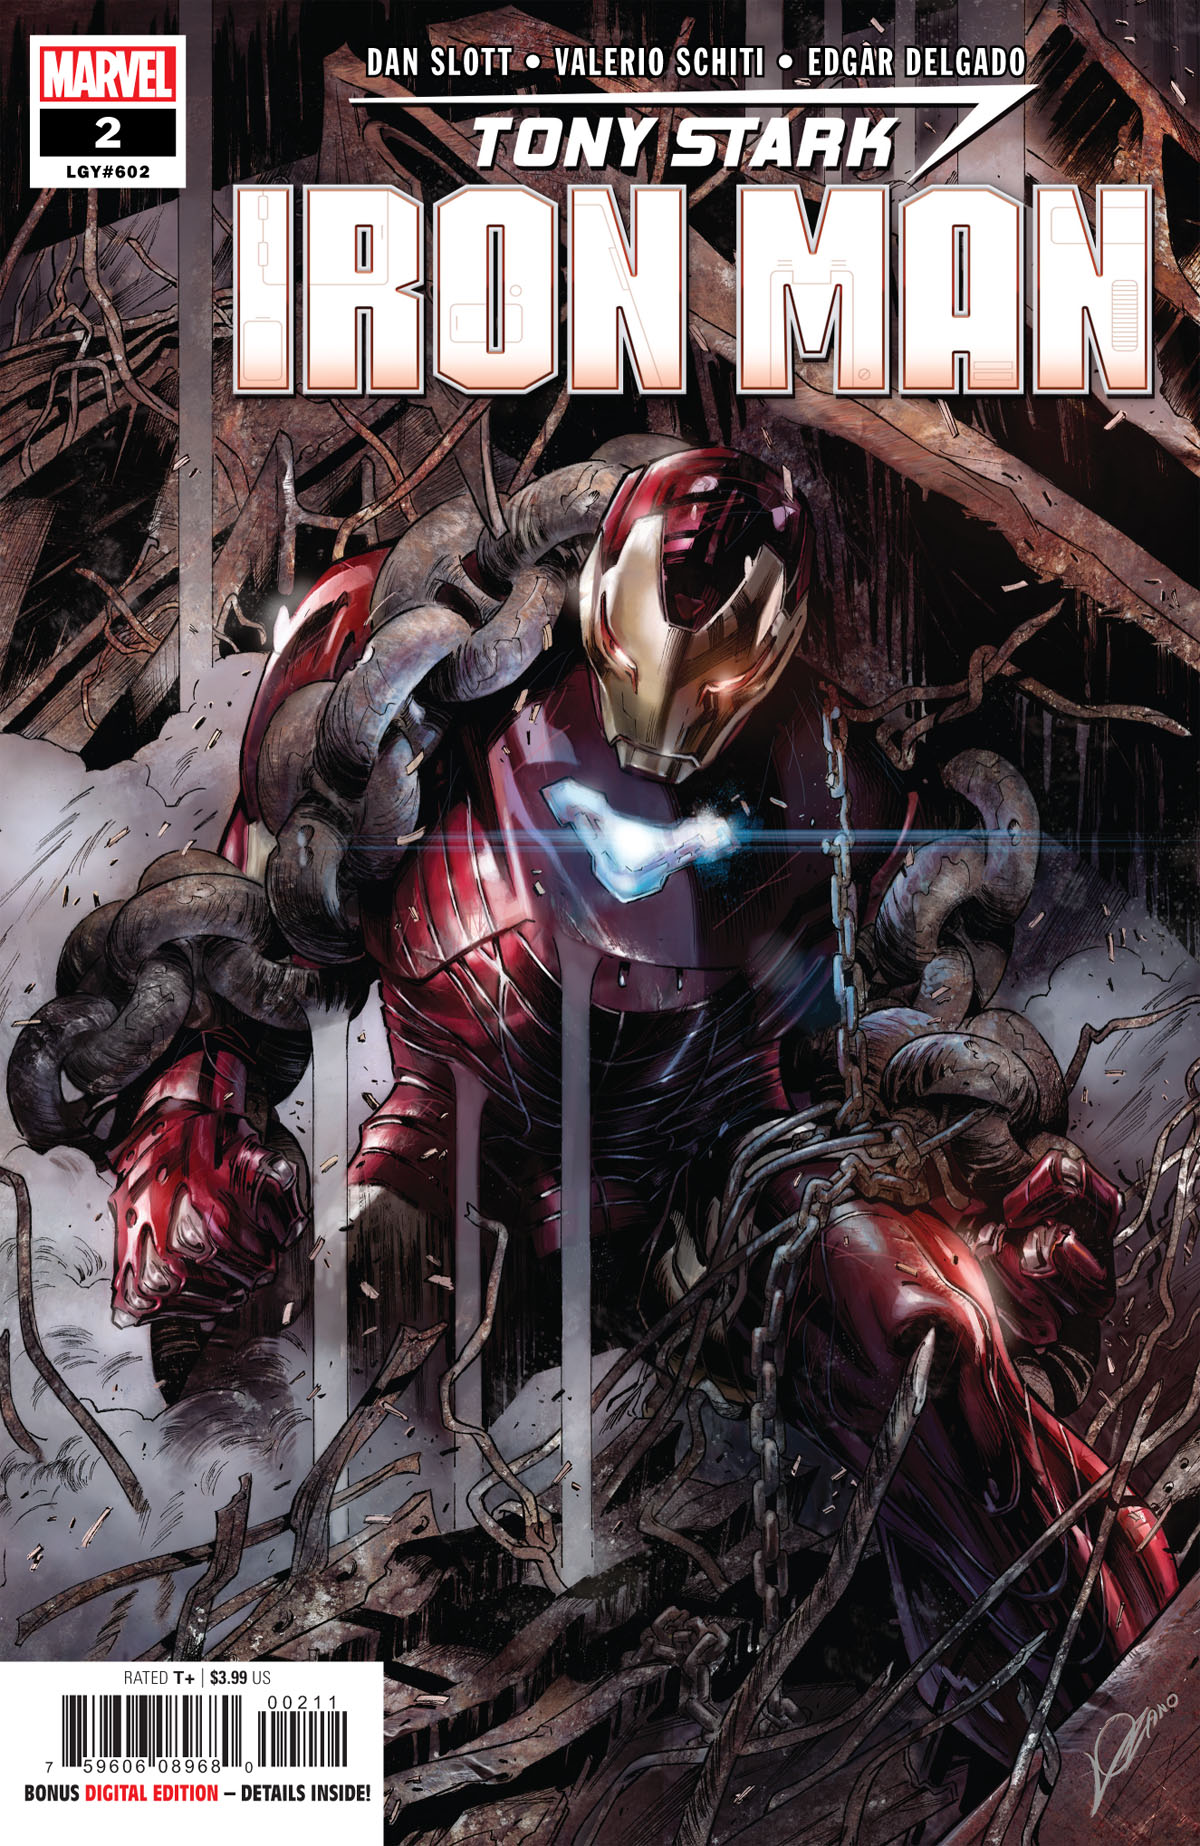 Tony Stark: Iron Man #2 cover